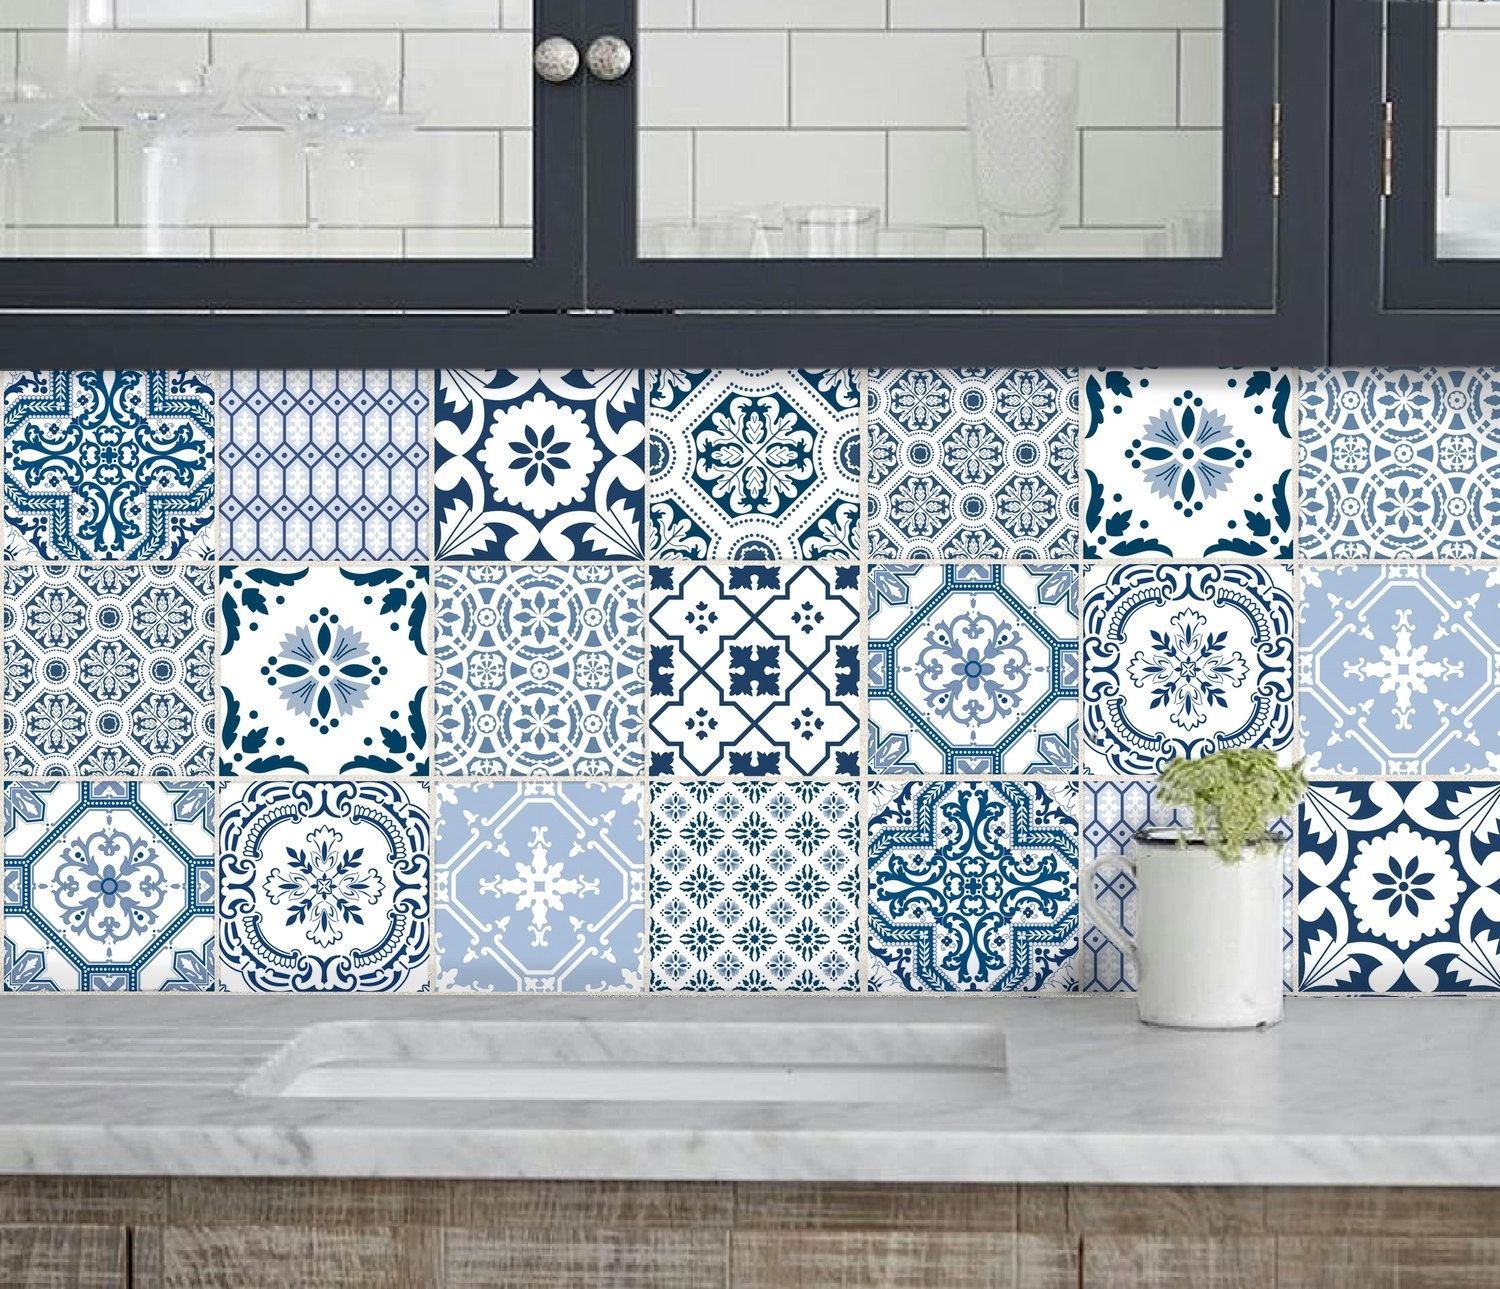 Moroccan Tile Stickers south Africa - Kitchen bathroom Tile Decals ...